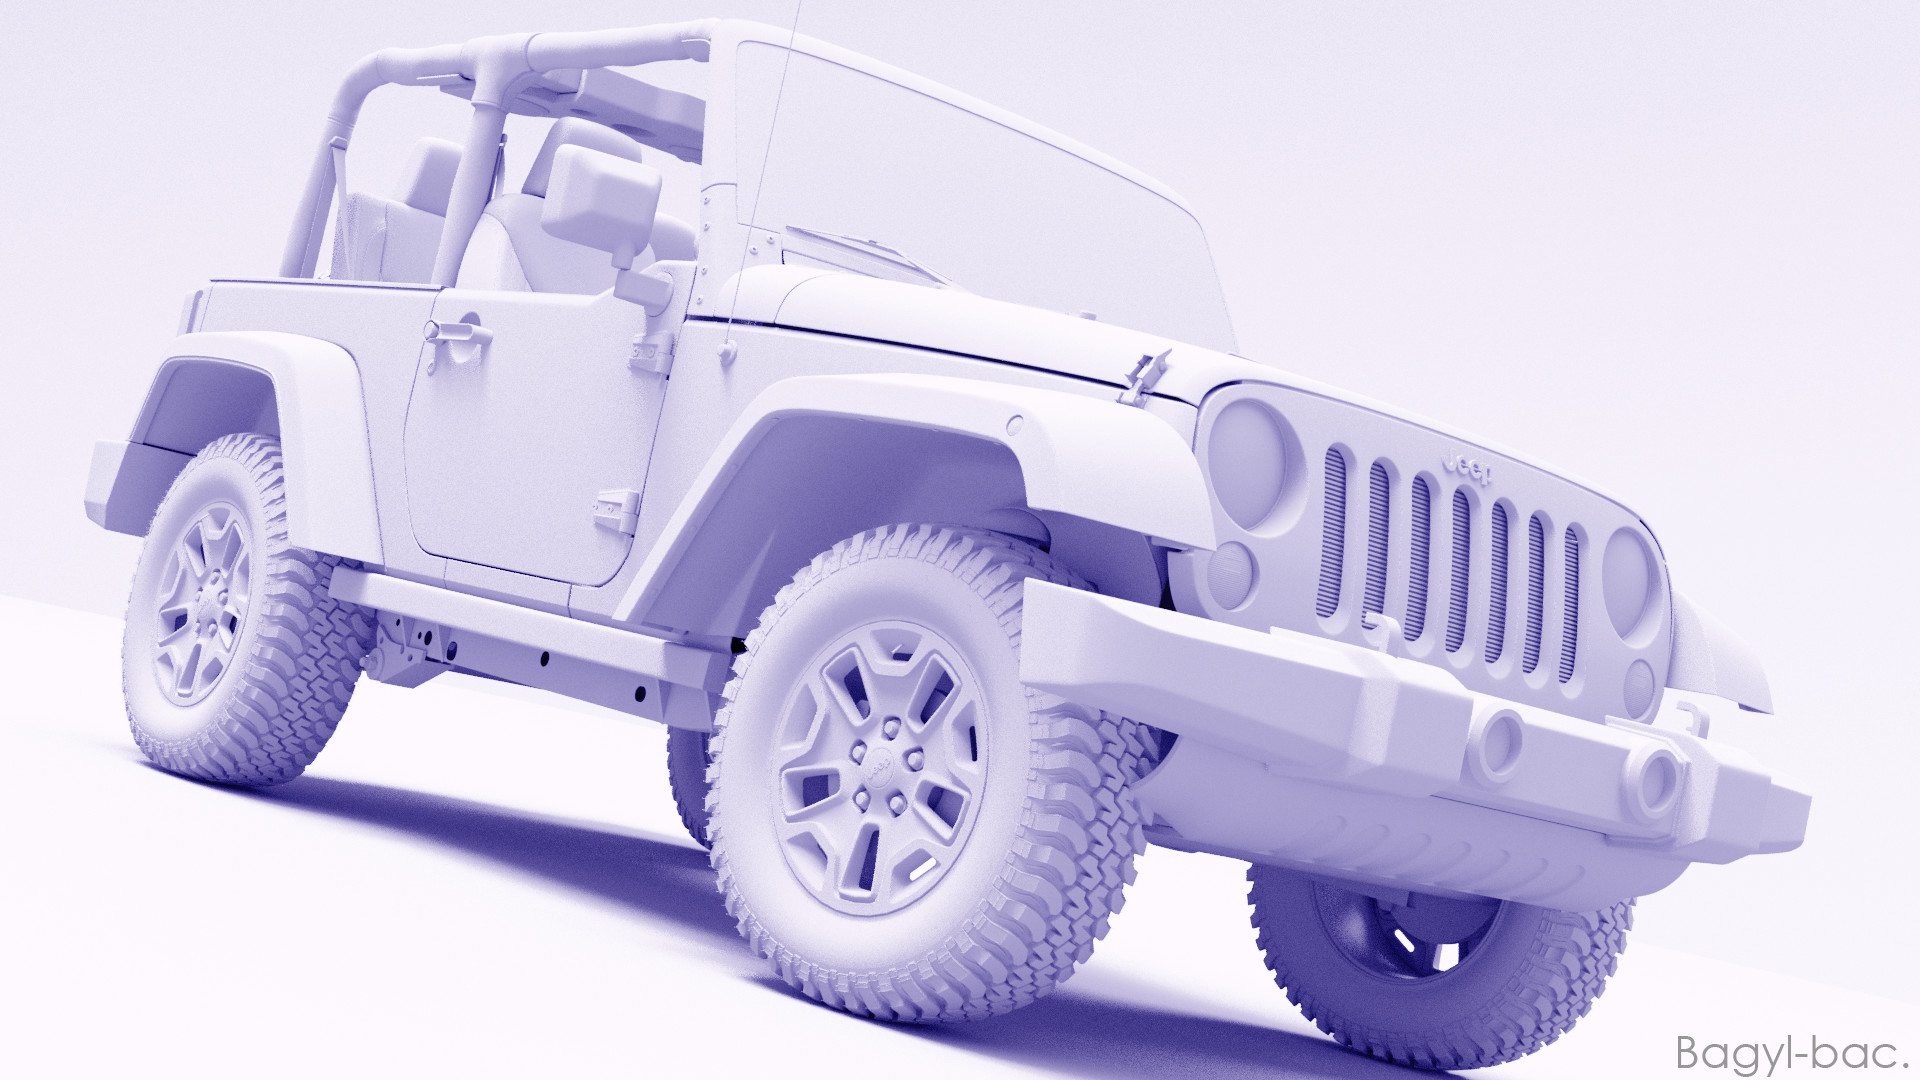 Winful Bagyl Bac Jeep Wrangler Cgm Course Renders